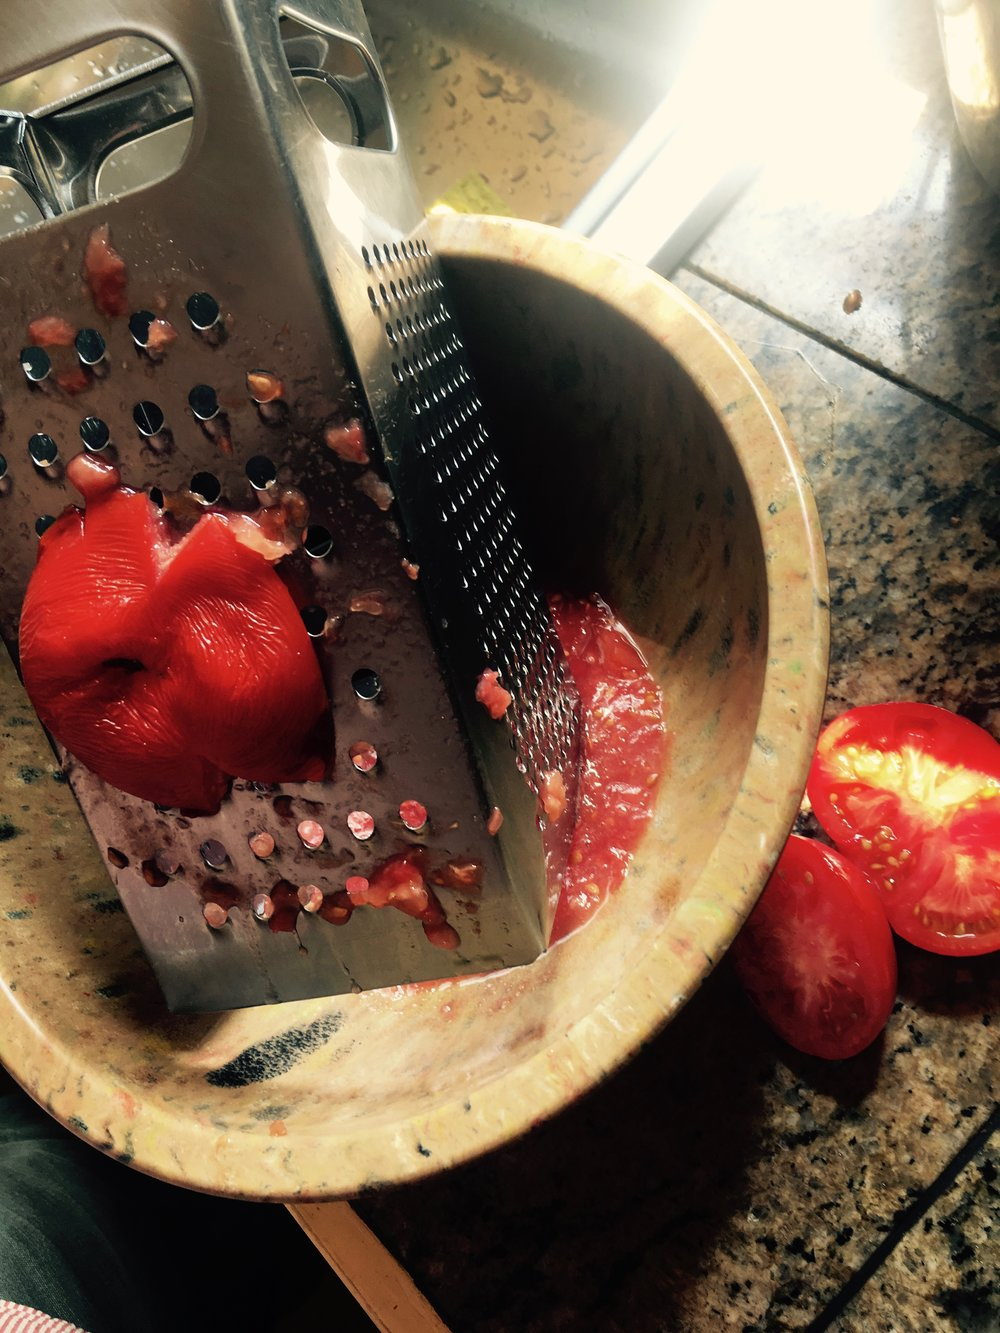 grating tomatoes for samfaina